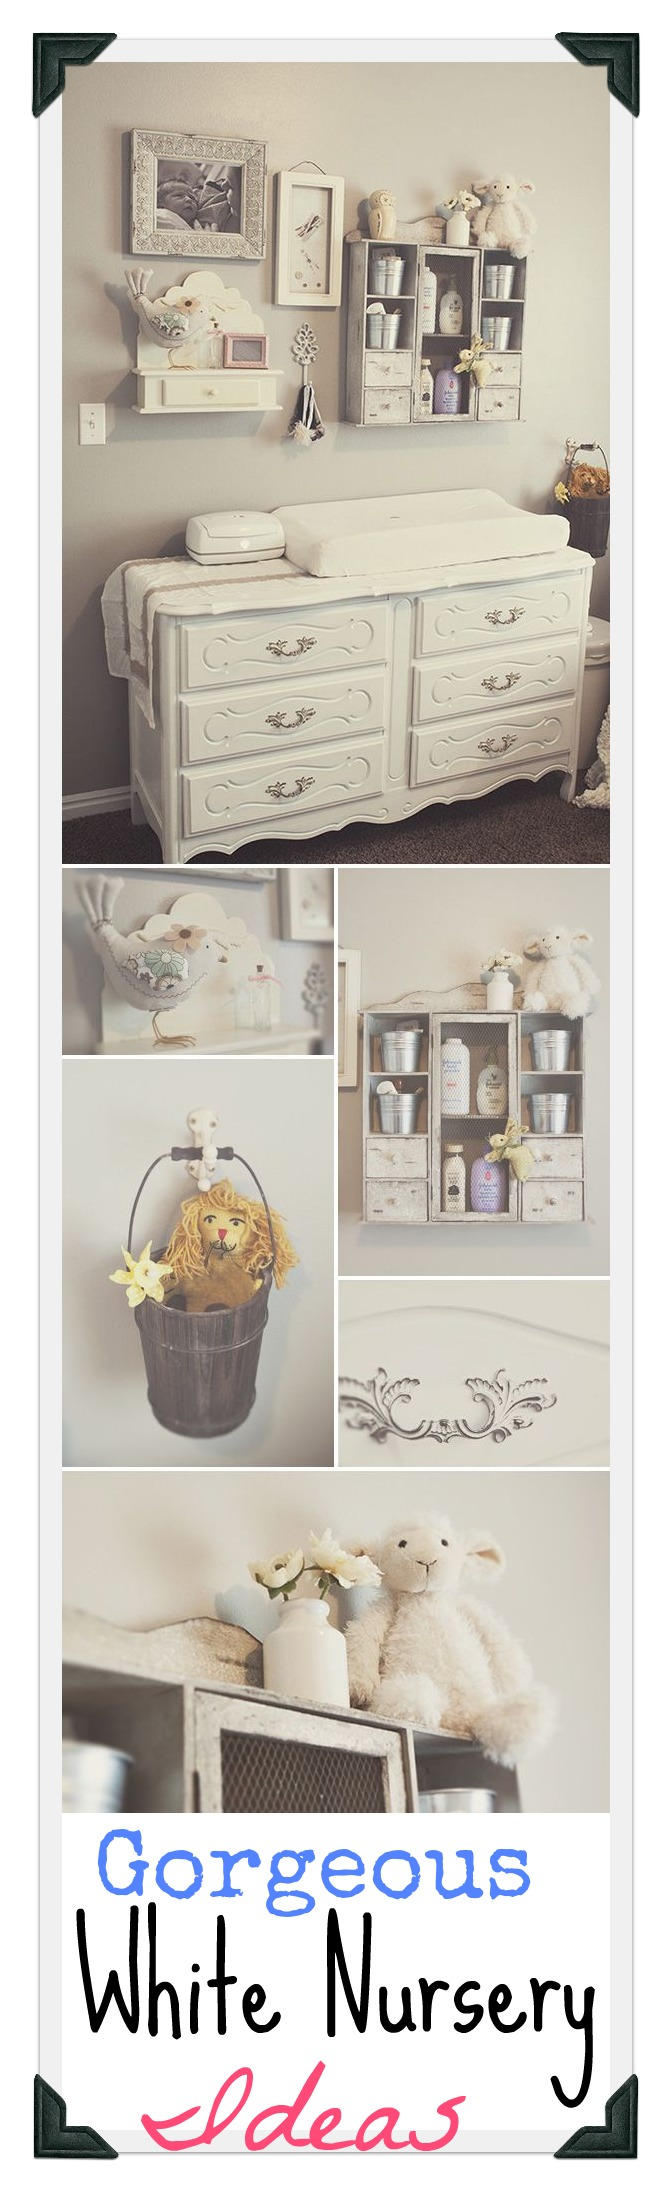 white nursery ideas